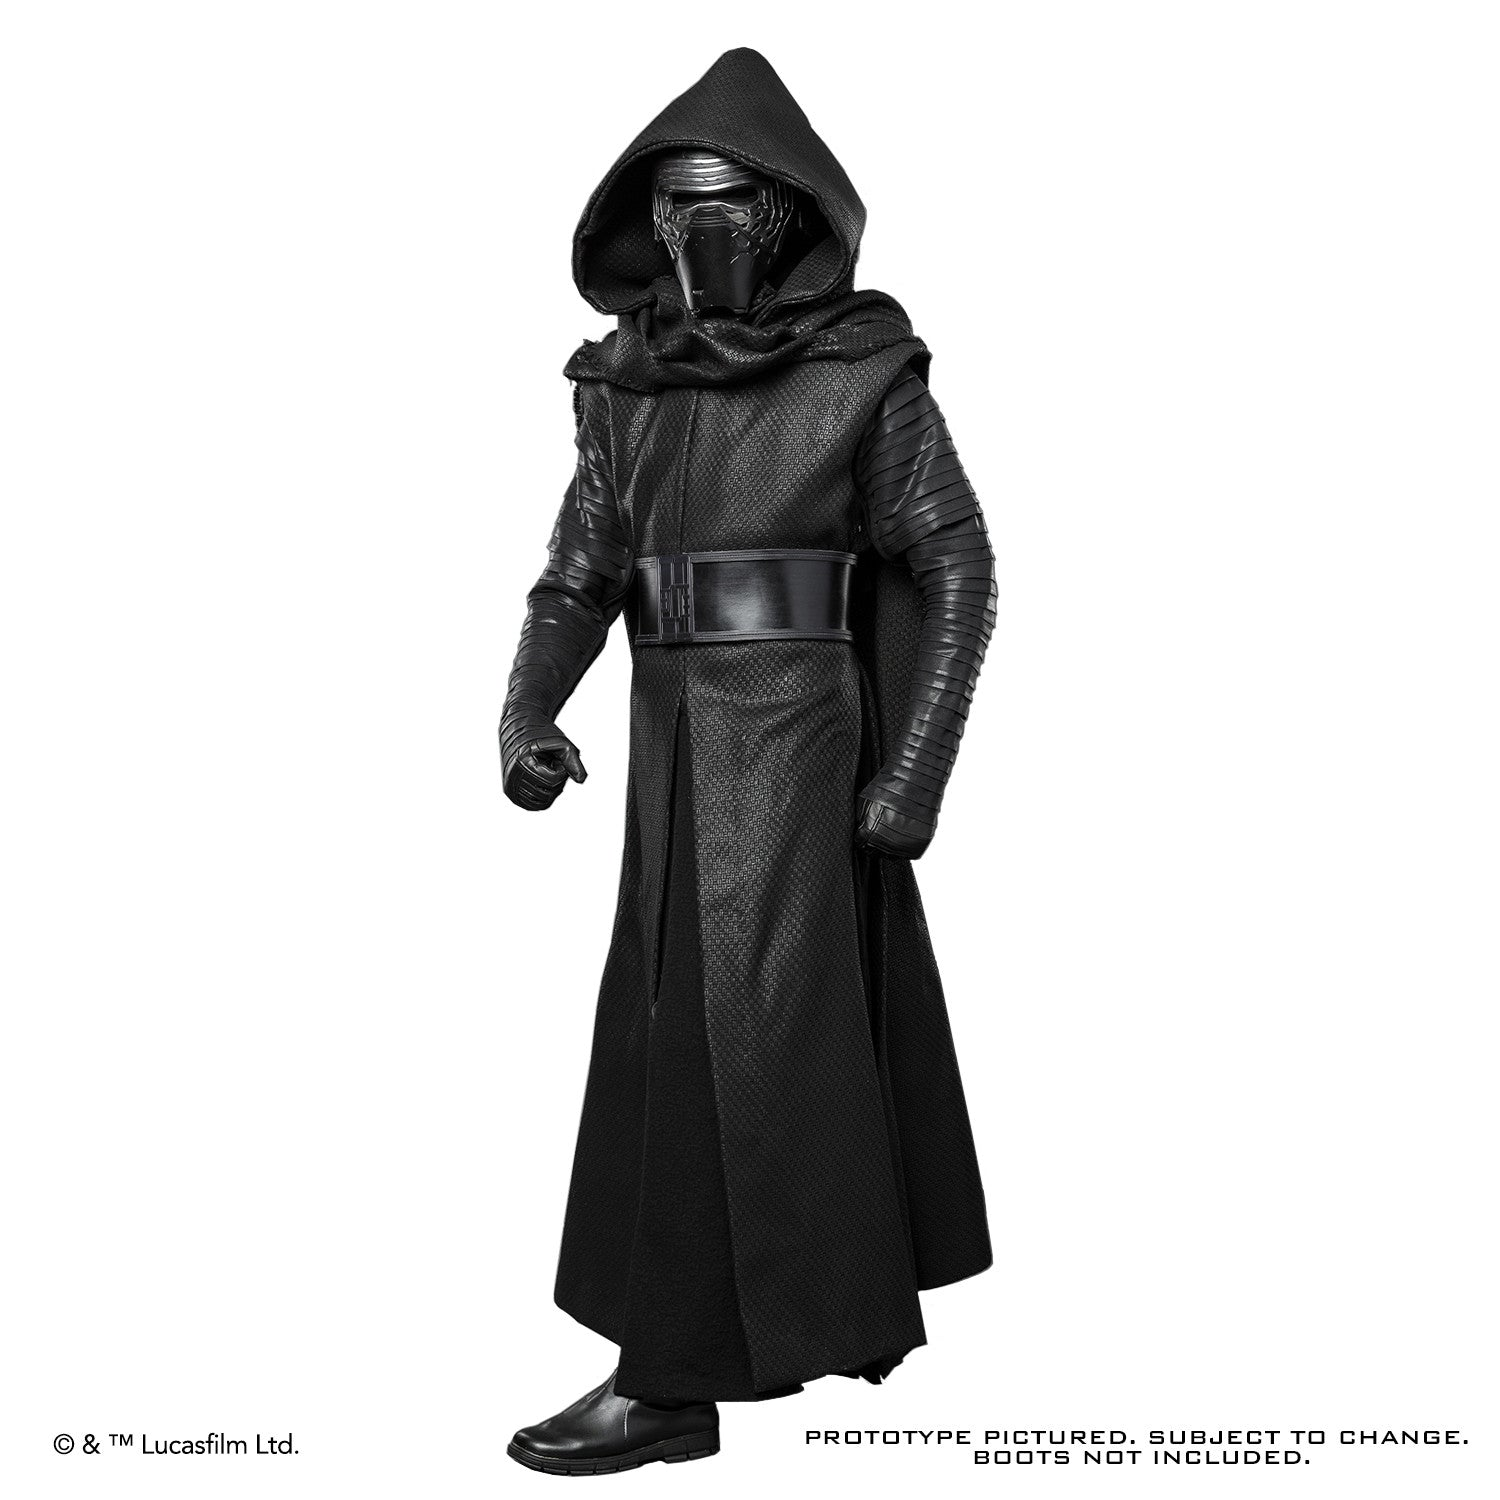 STAR WARS™ THE FORCE AWAKENS Kylo Ren Premier Costume Ensemble with Helmet (  sc 1 st  Anovos & STAR WARS™: THE FORCE AWAKENS Kylo Ren Costume Ensemble | ANOVOS ...